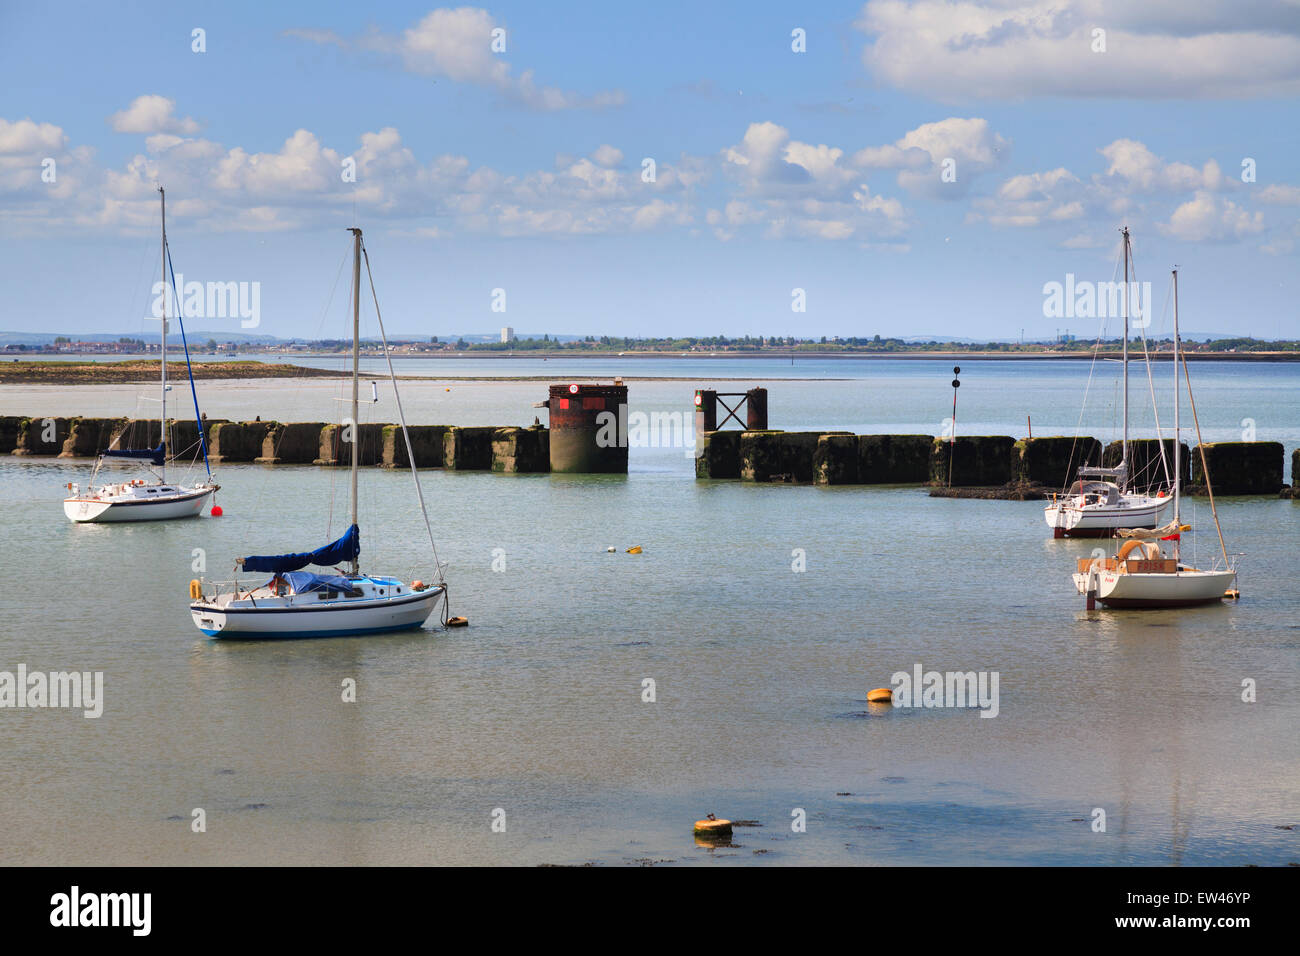 Boat access gap in the supports for the old Hayling Billy Bridge across Langstone Harbour Stock Photo